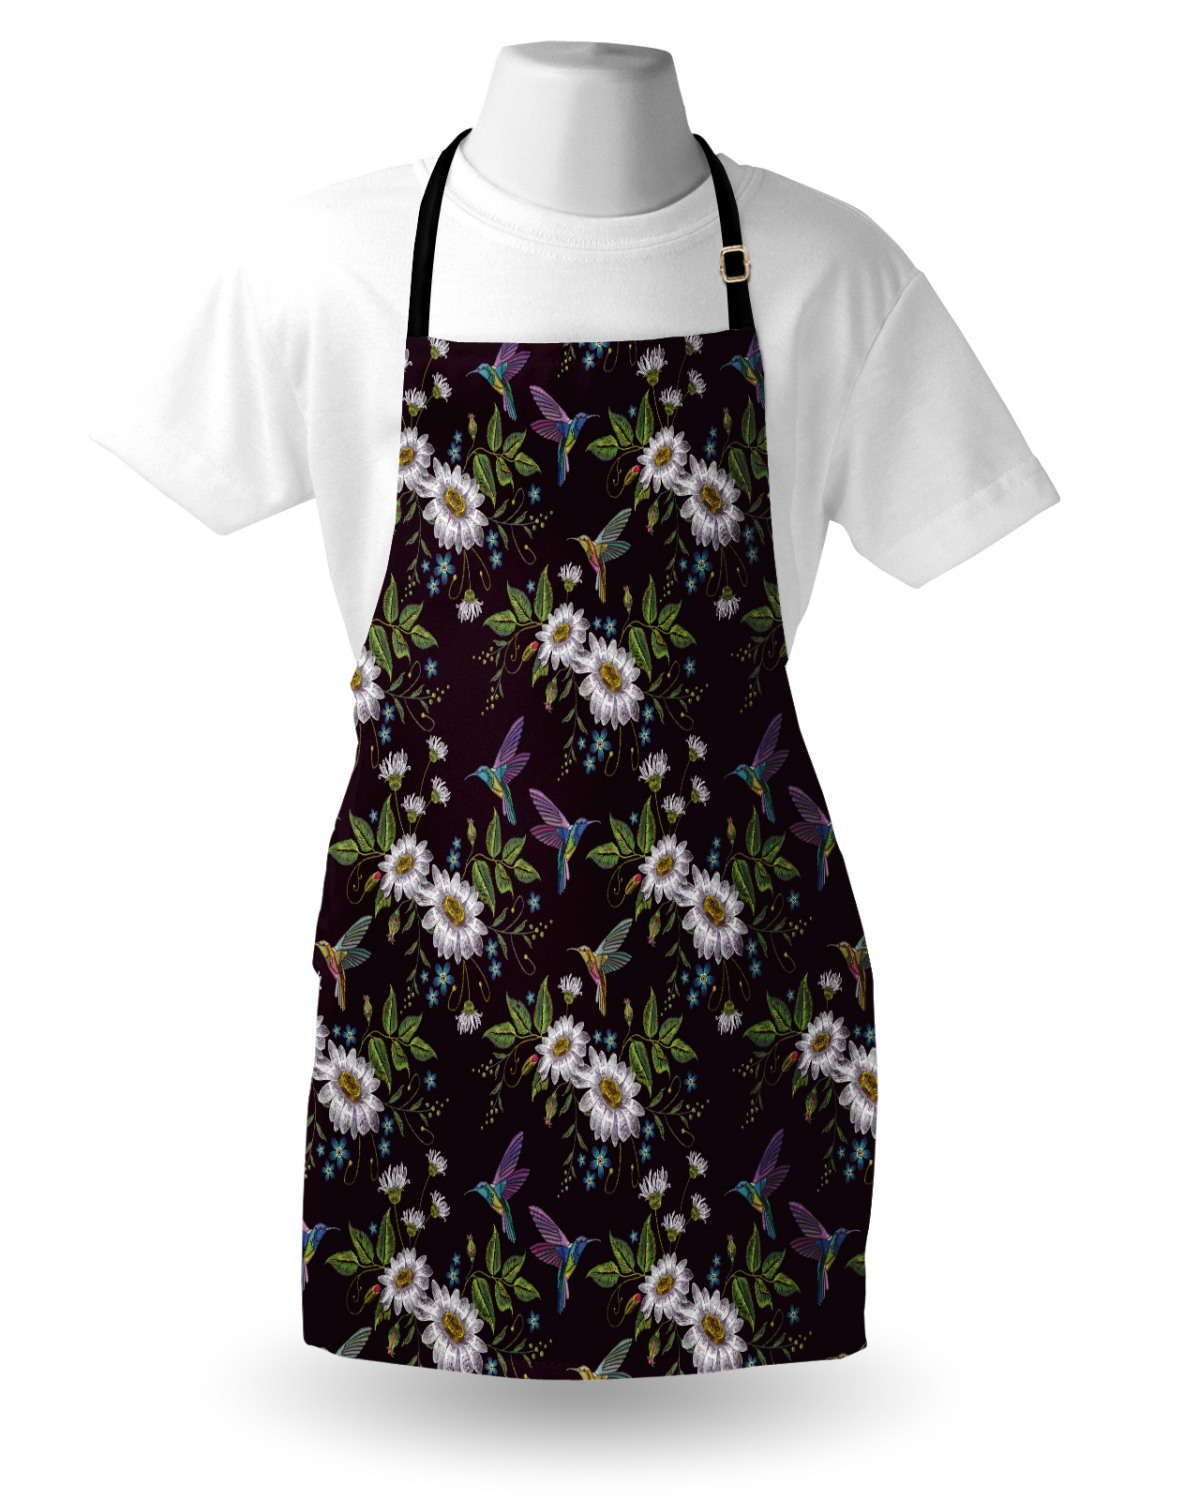 Ambesonne-Outdoor-Use-Apron-with-Adjustable-Neck-Strap-for-Gardening-and-Cooking miniatura 33